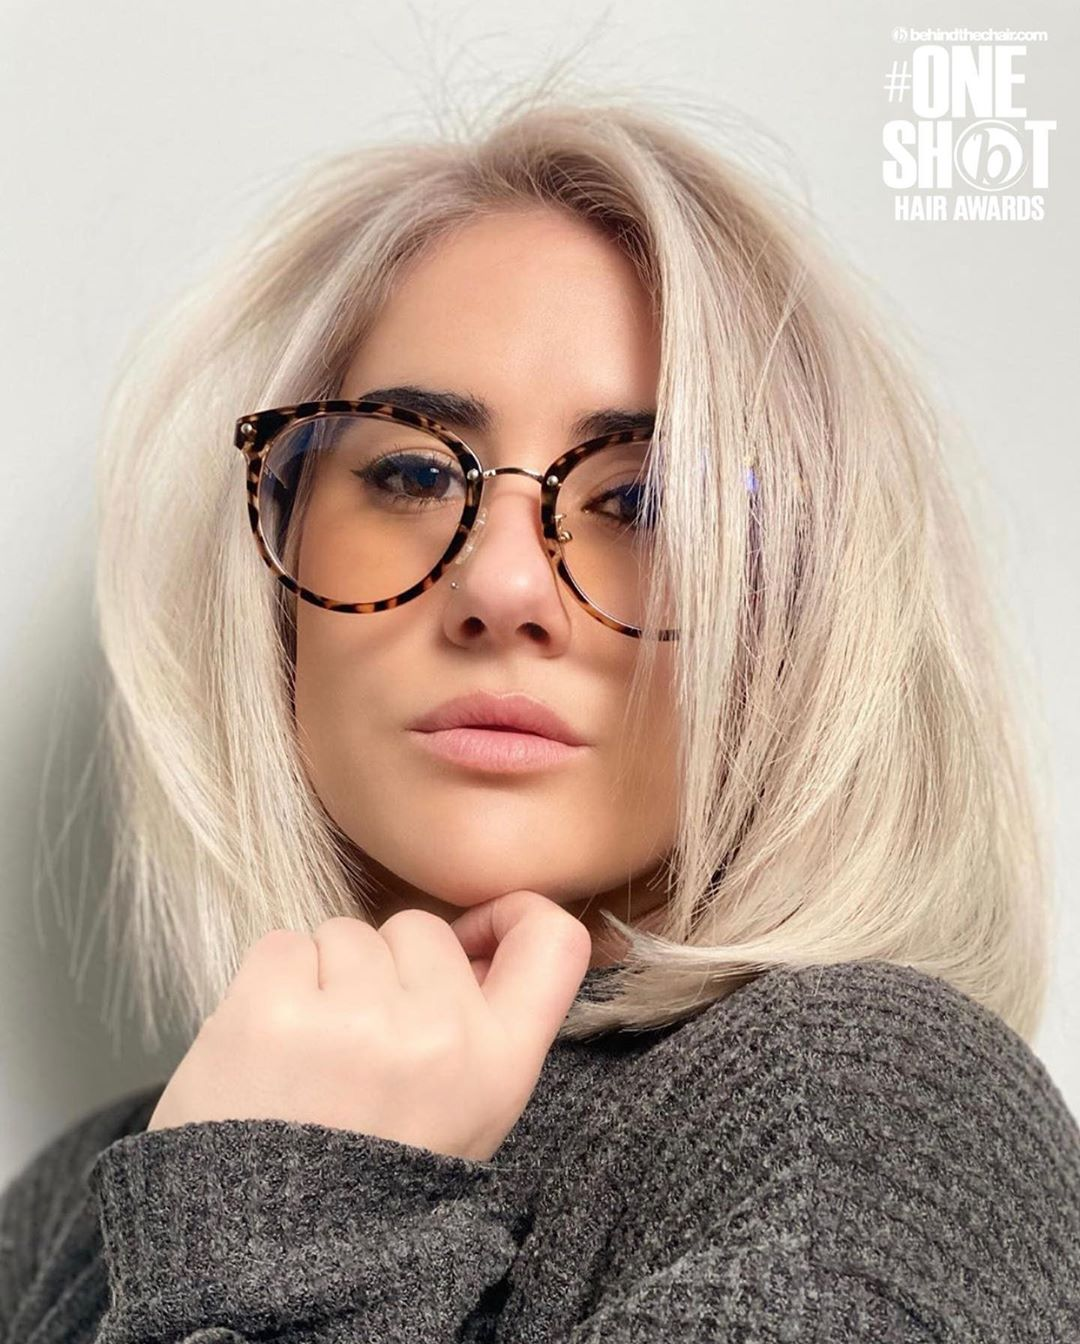 What Are The Best Short Hairstyles To Wear With Glasses Hair Adviser